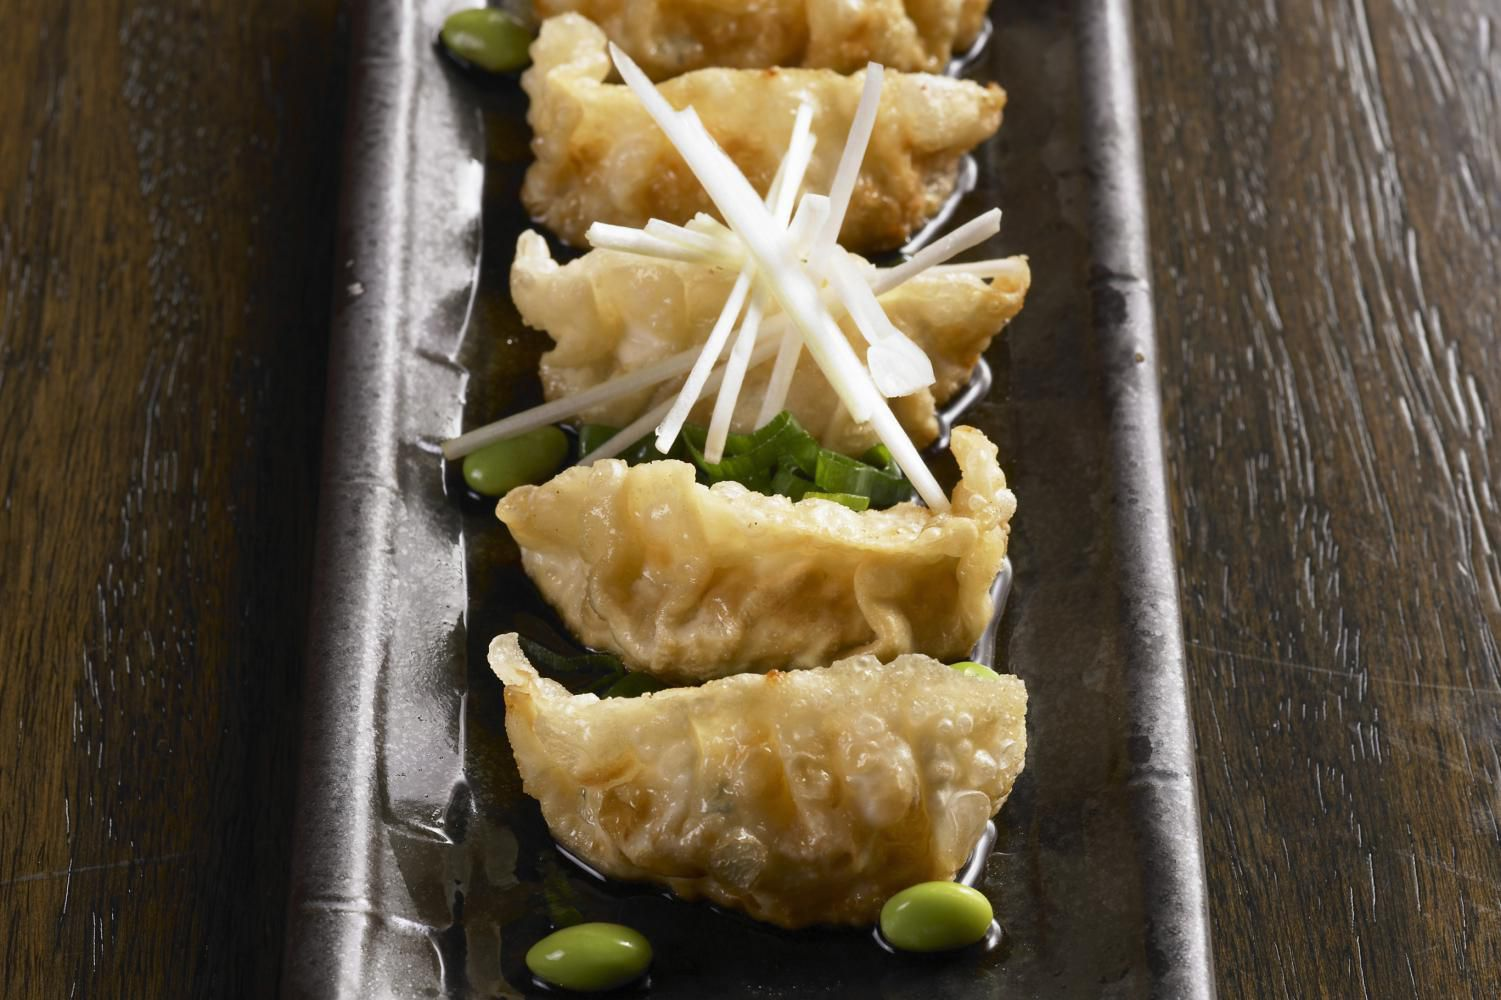 Kosher chinese inspired menu with recipes what are some fantastic chinese new year menu ideas cooking techniques tips forumfinder Gallery